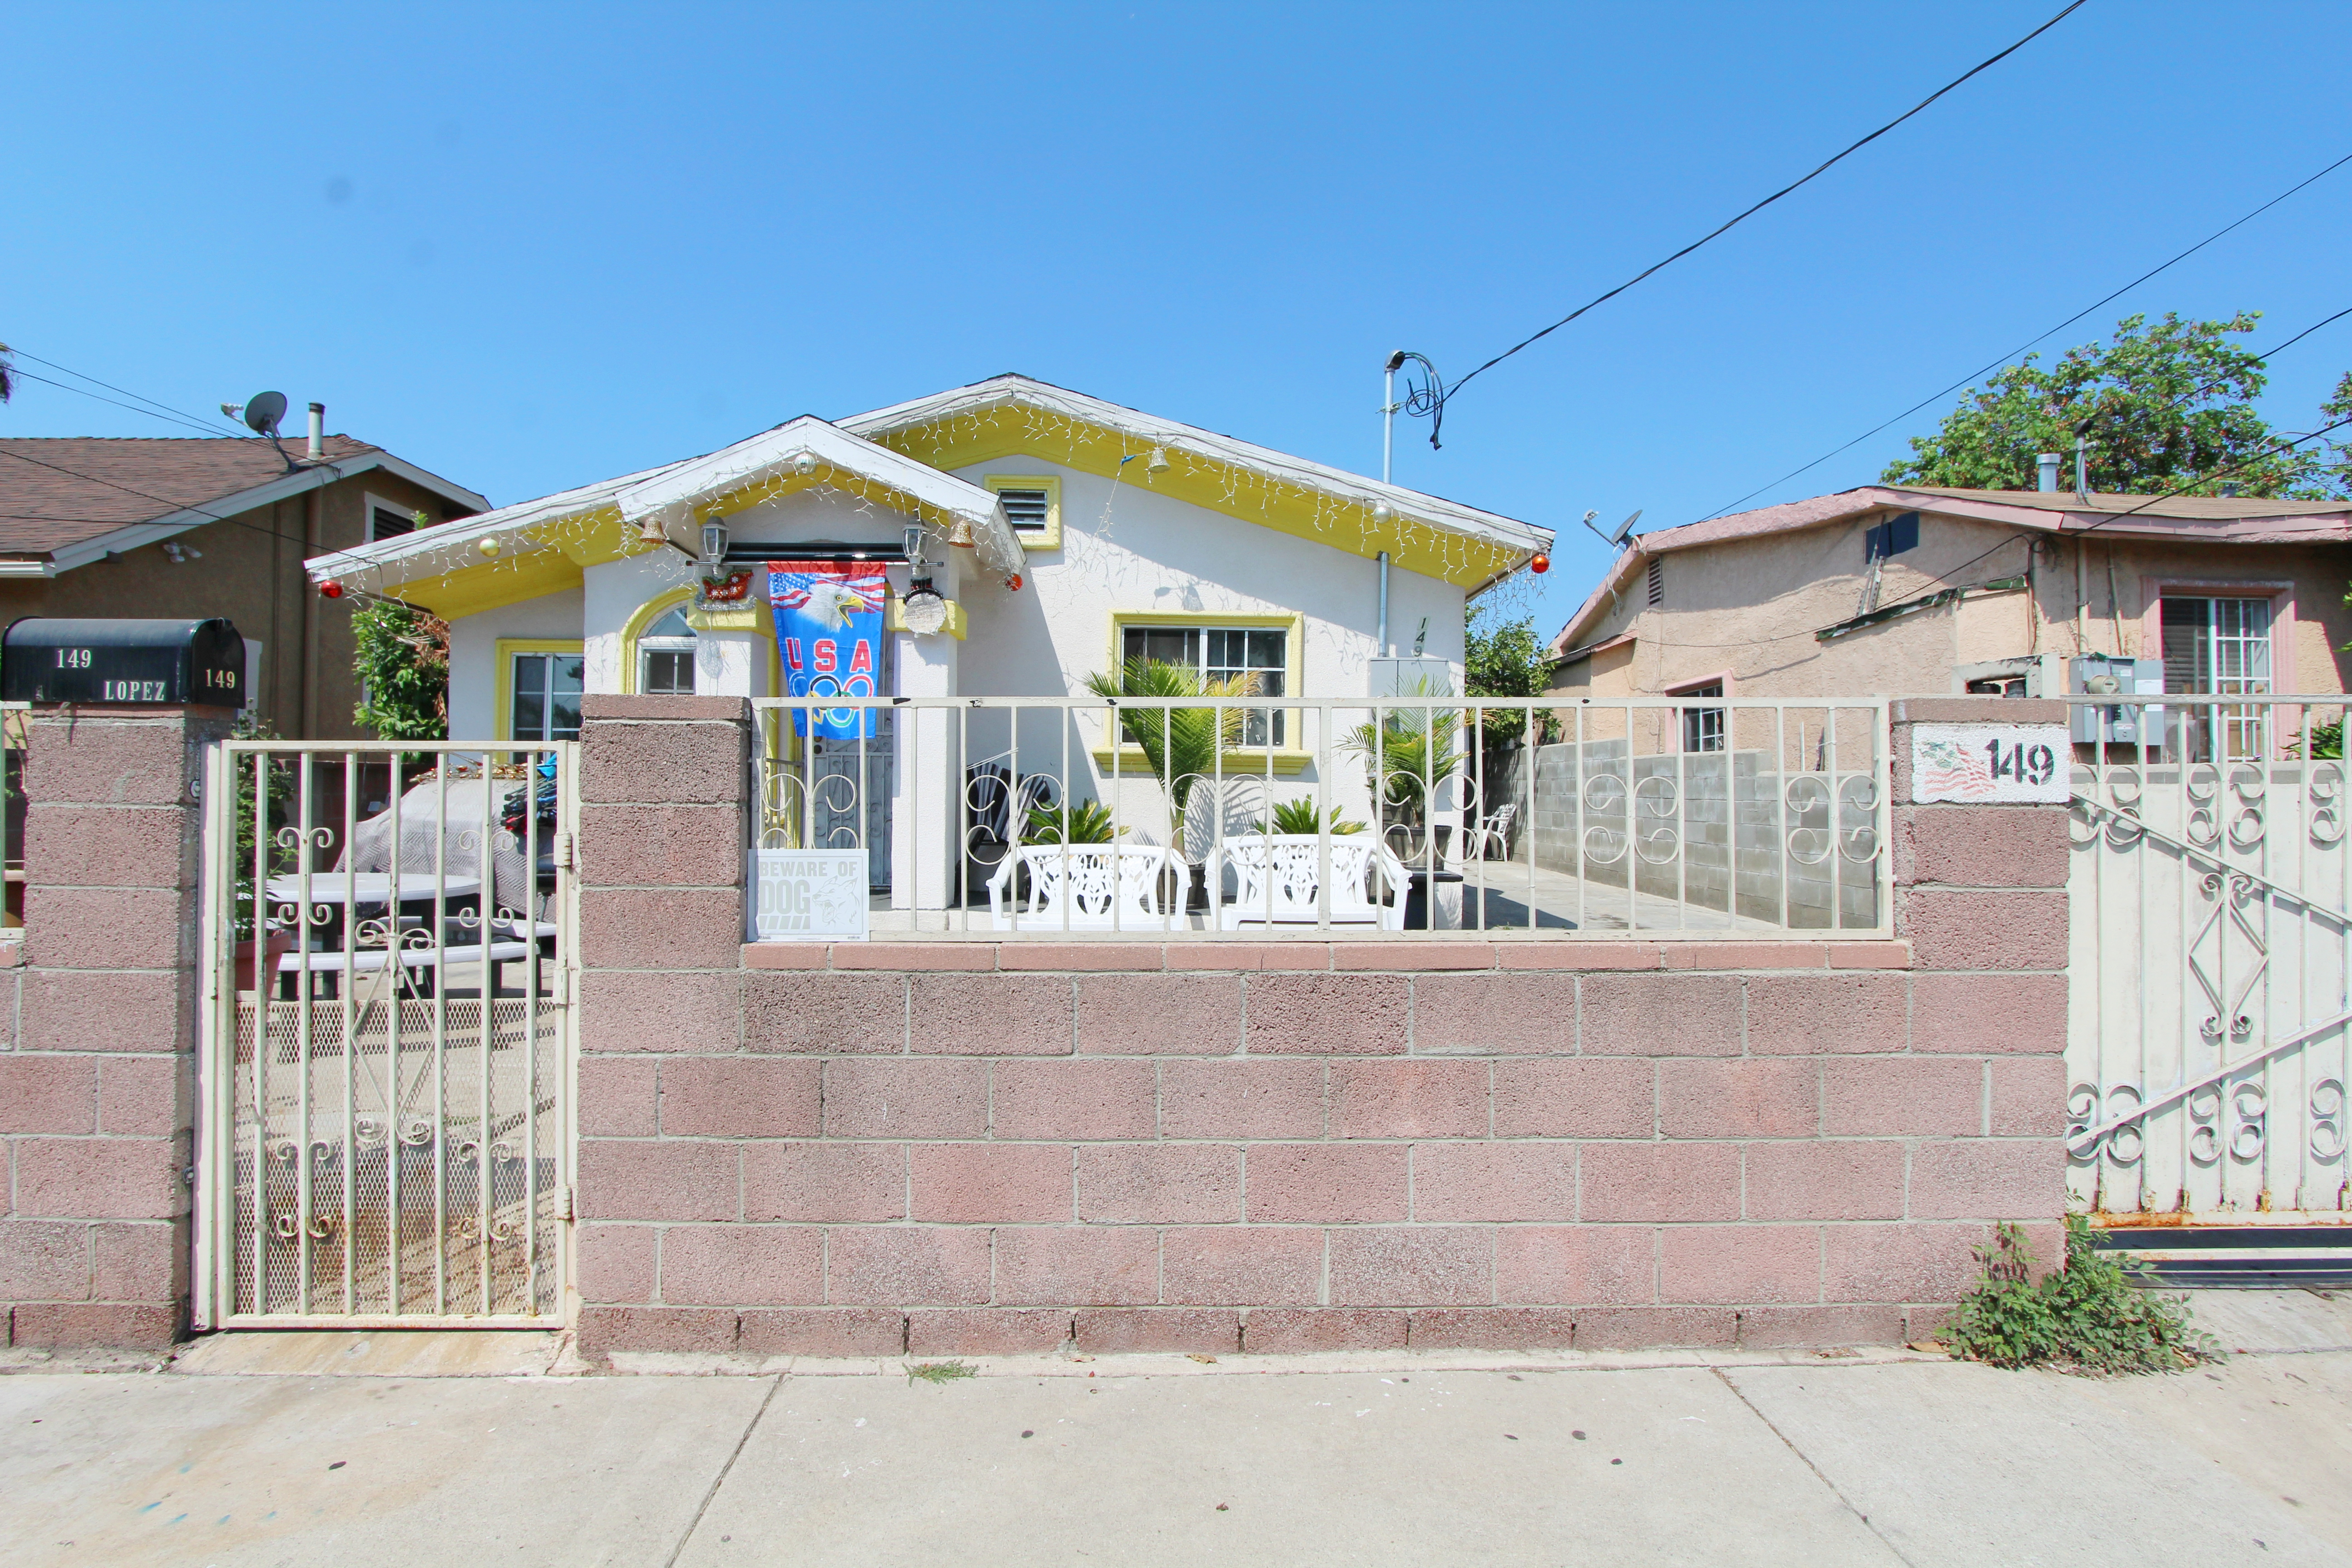 149 Nevada Ave., Los Angeles CA